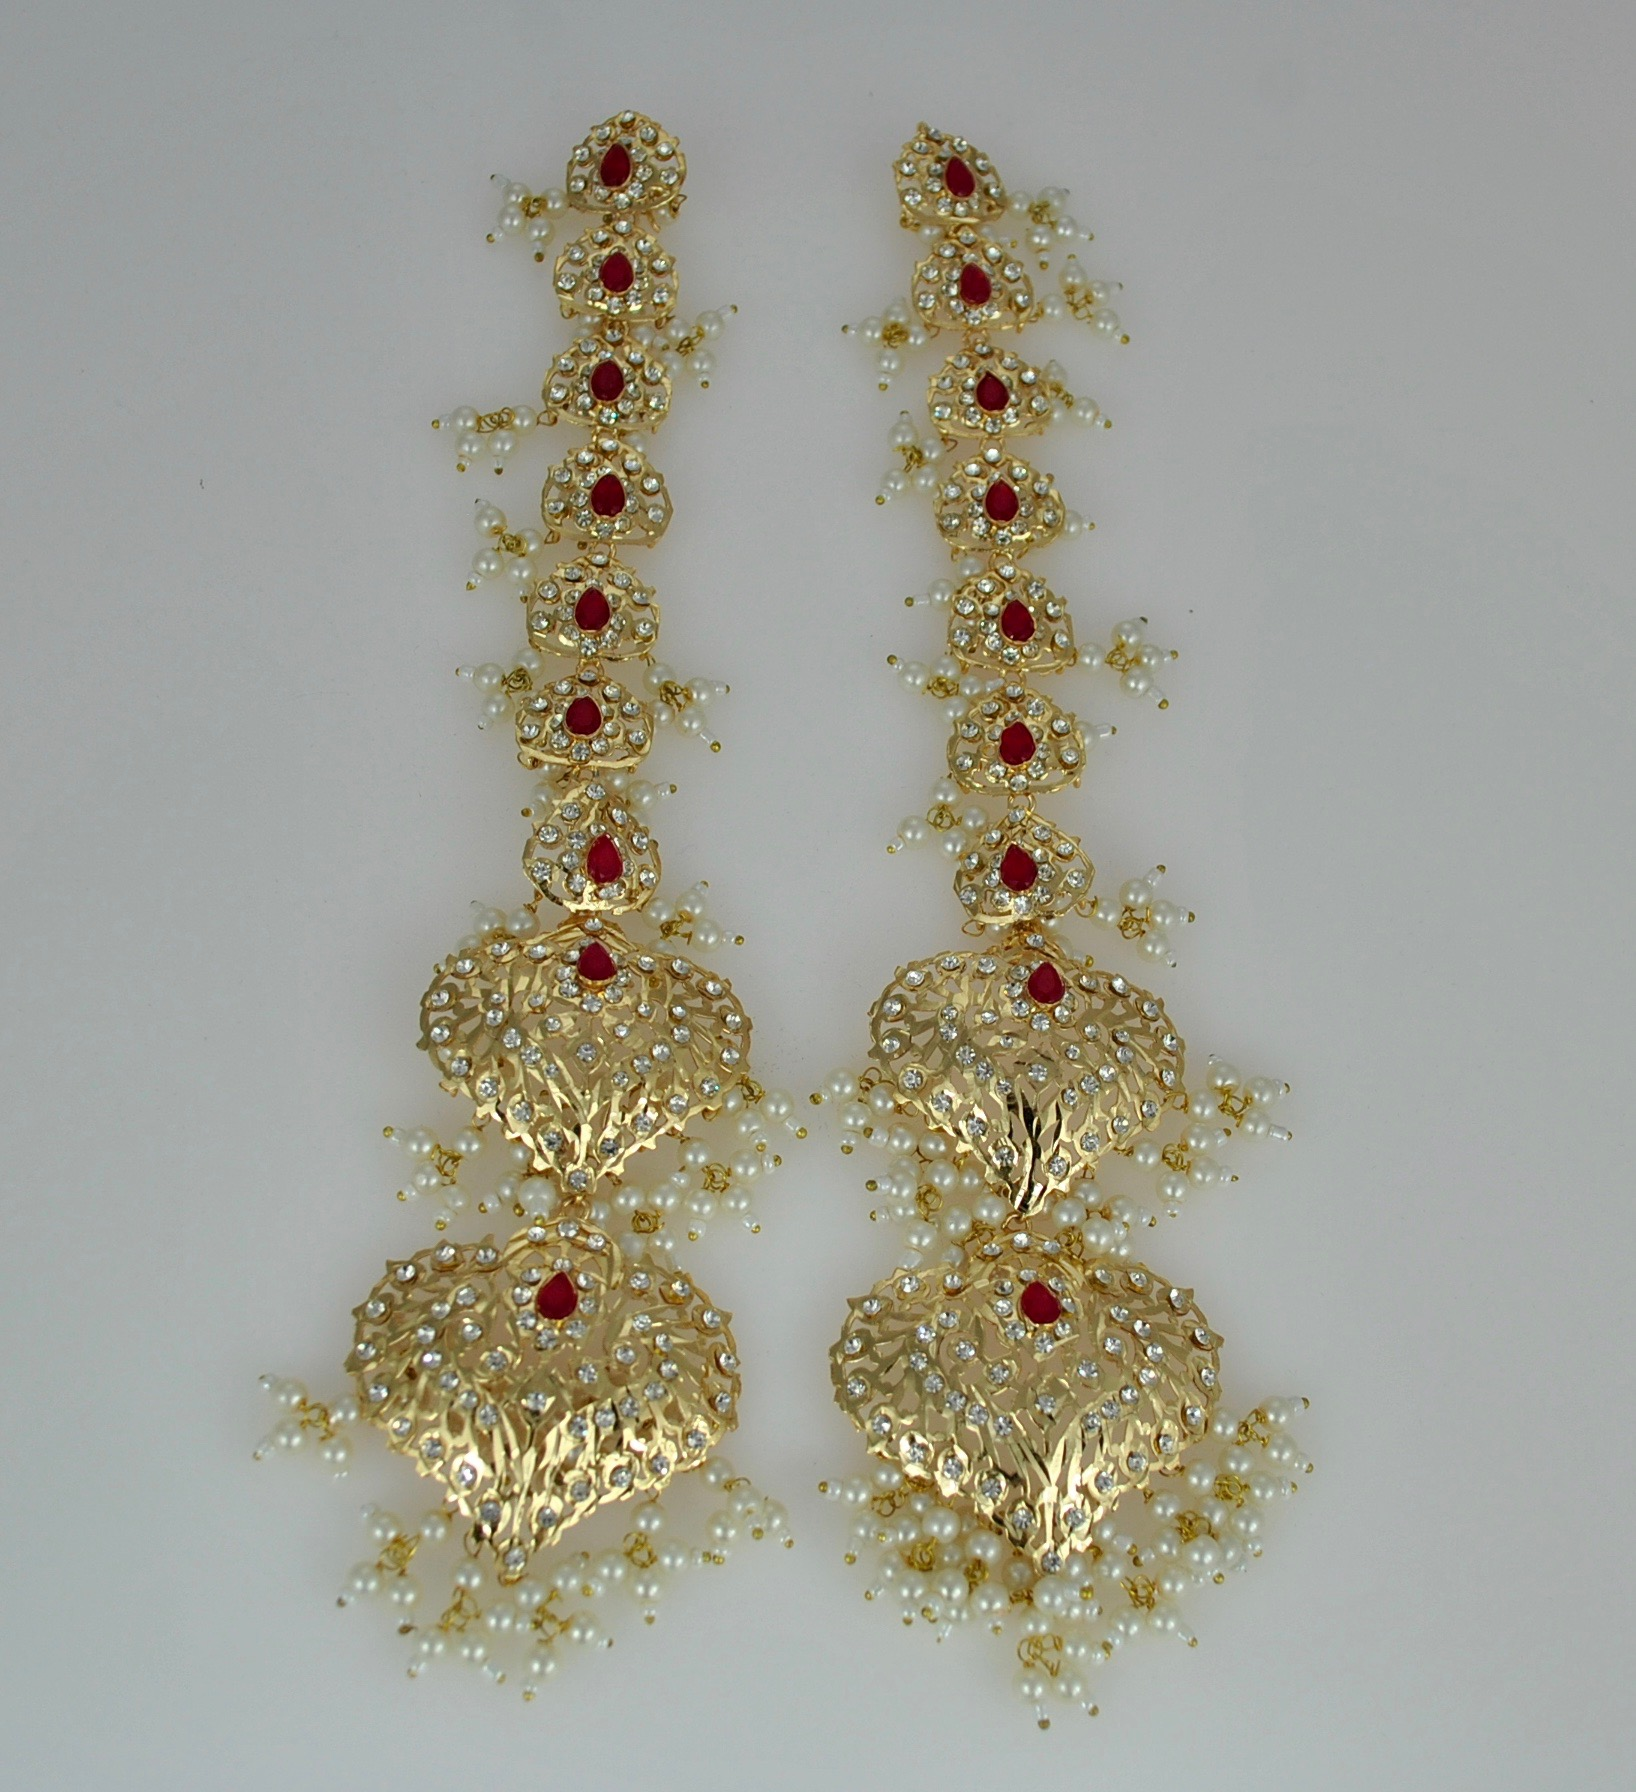 Oversized extra long earrings in red and gold with 22k Gold vermeil